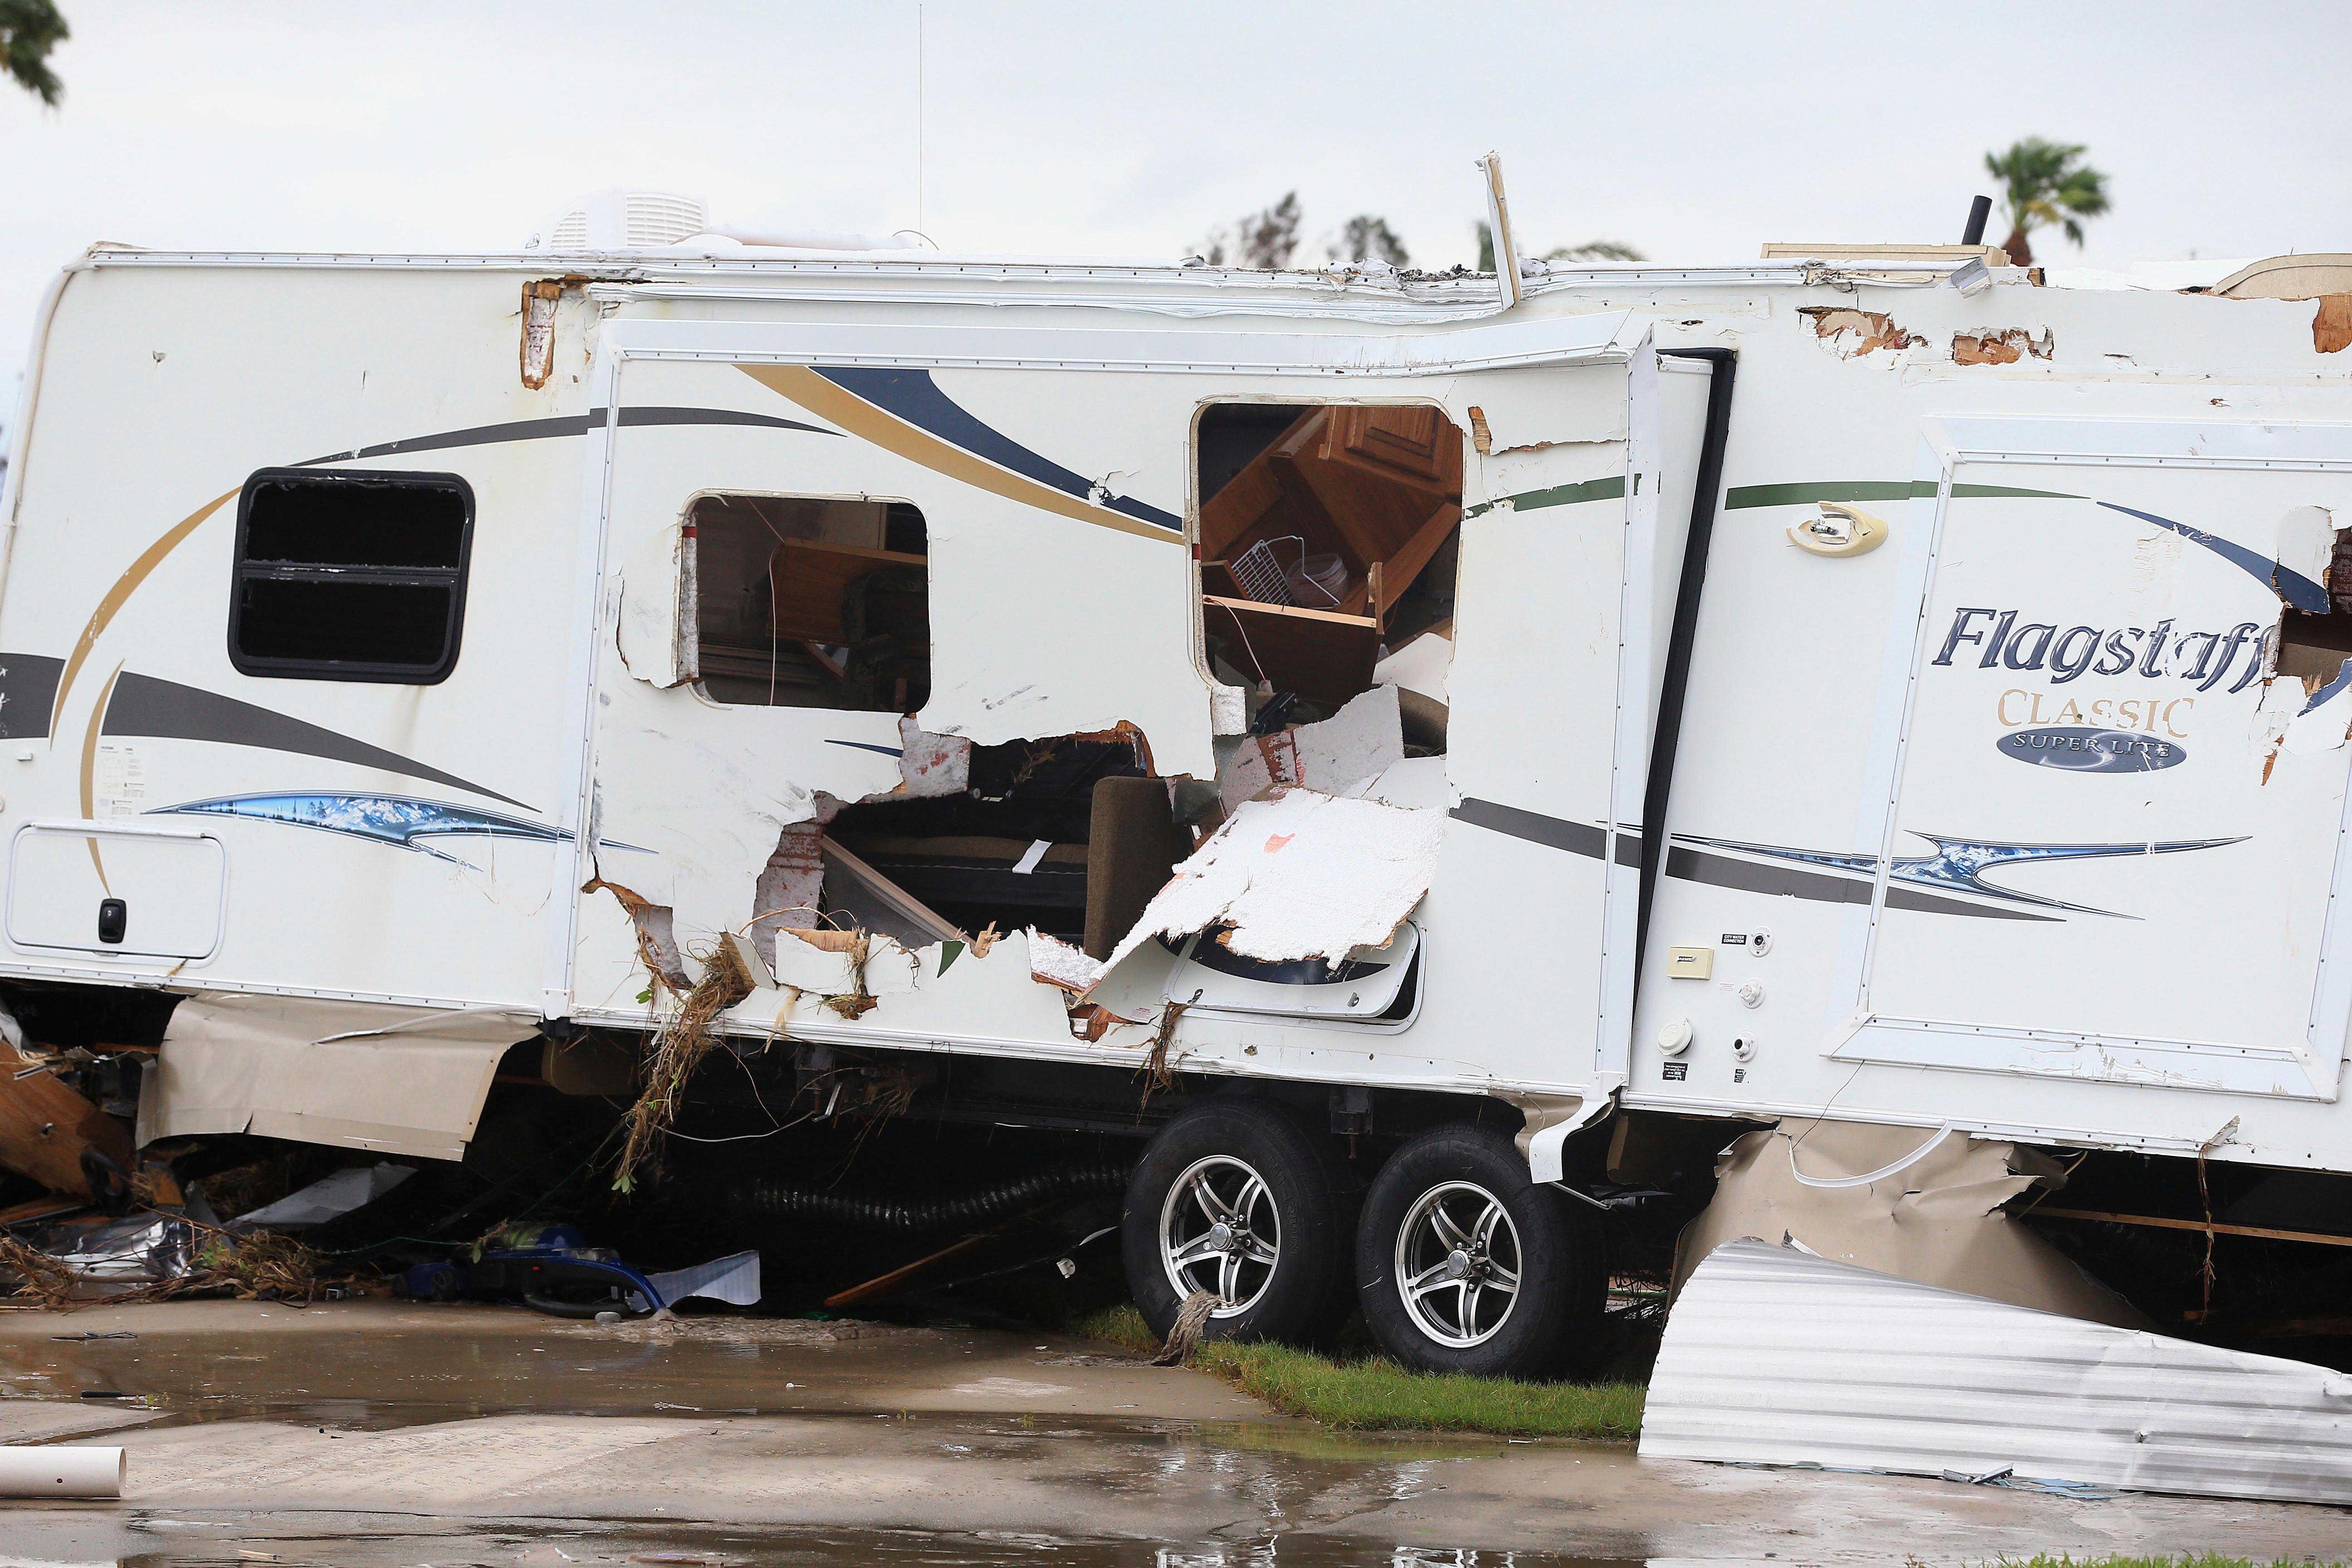 Mobile homes are destroyed at an RV park after Hurricane Harvey landed in the Coast Bend area on Saturday, Aug. 26, 2017, in Port Aransas, Texas. The National Hurricane Center has downgraded Harvey from a Category 1 hurricane to a tropical storm. Harvey came ashore Friday along the Texas Gulf Coast as a Category 4 storm with 130 mph winds, the most powerful hurricane to hit the U.S. in more than a decade. (Gabe Hernandez/Corpus Christi Caller-Times via AP)